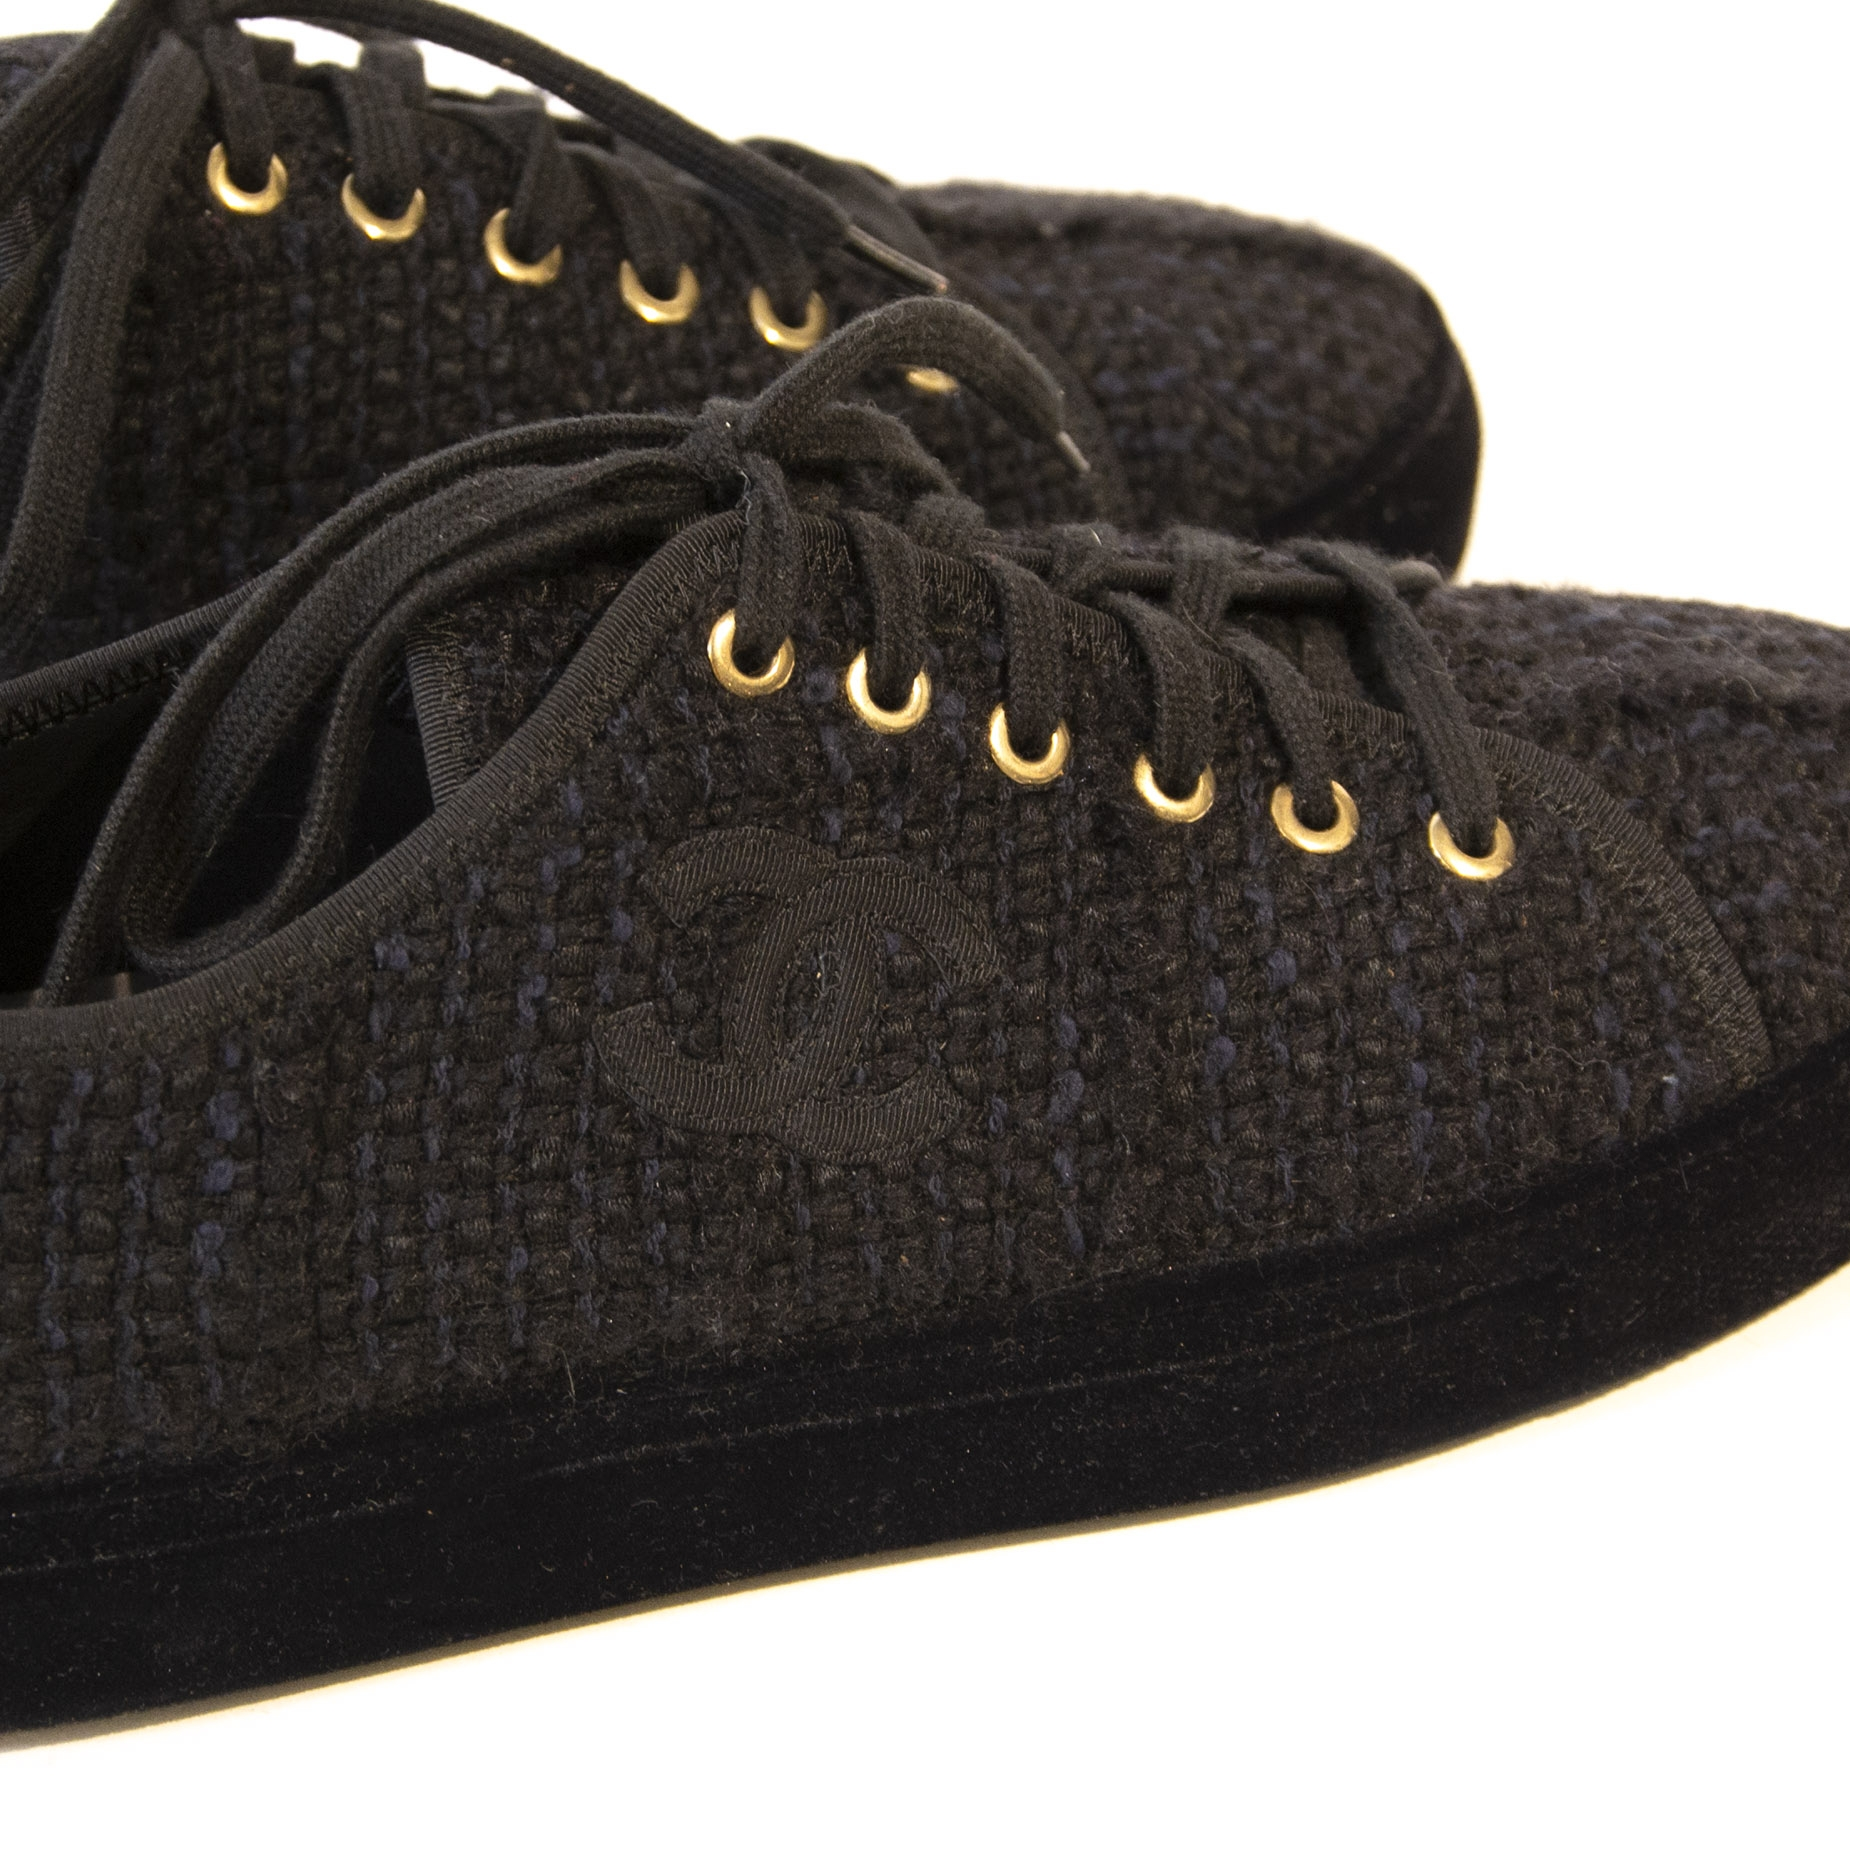 Chanel Black Tweed Sneakers - Size 39,5